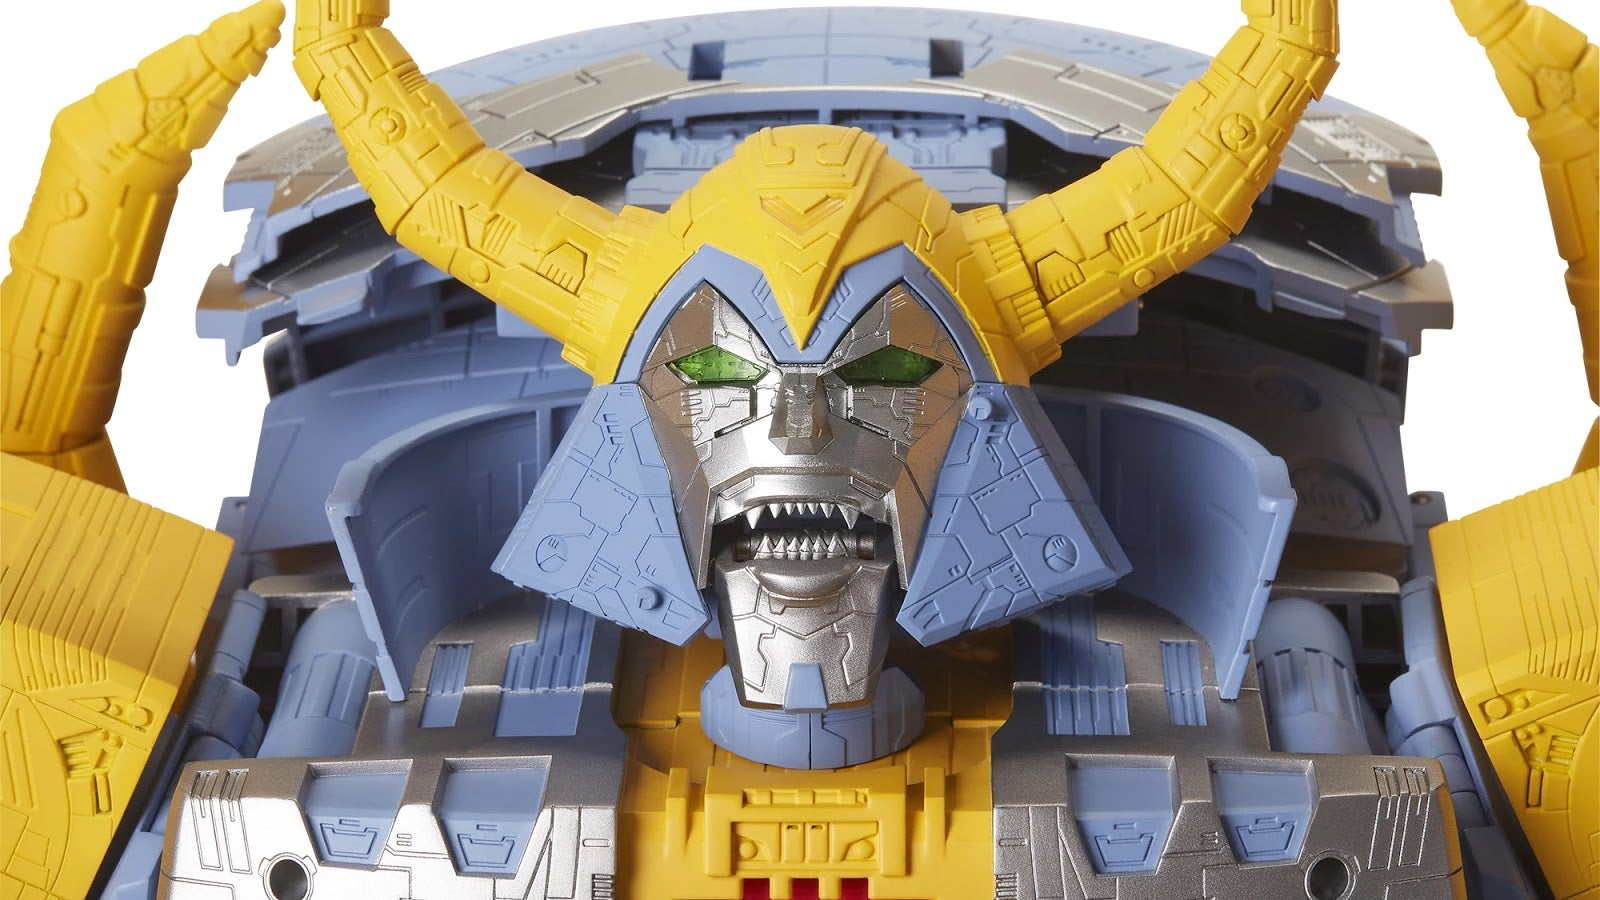 Hasbro Wants To Make A 2-Foot-Tall, $800 Transformers Unicron Toy